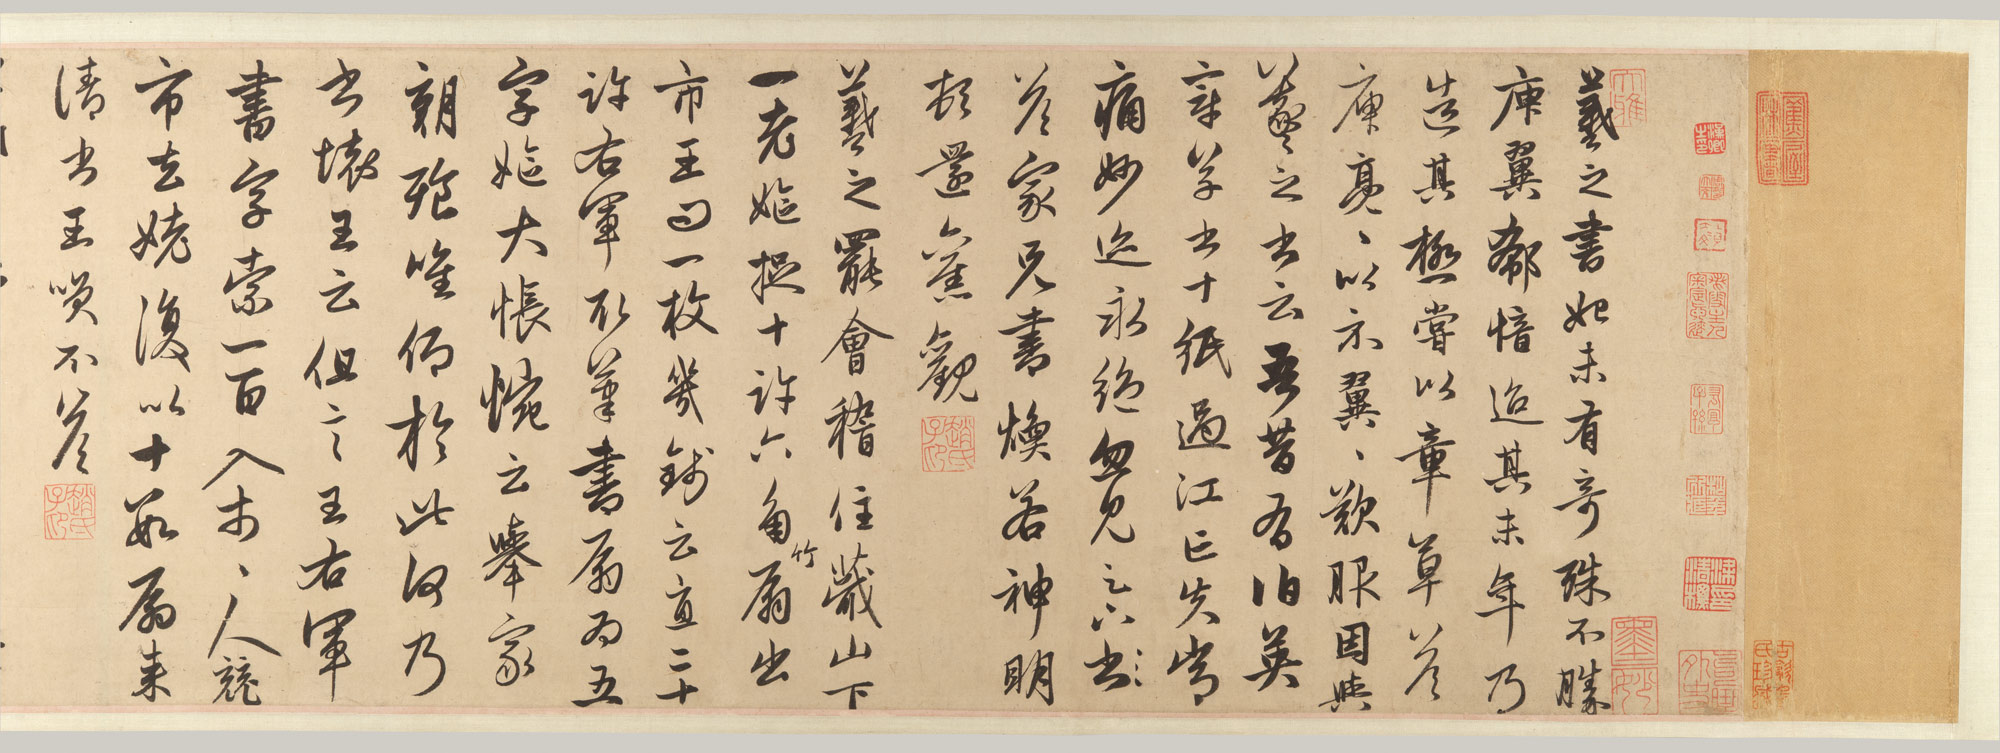 Chinese Painting Essay Heilbrunn Timeline Of Art History The